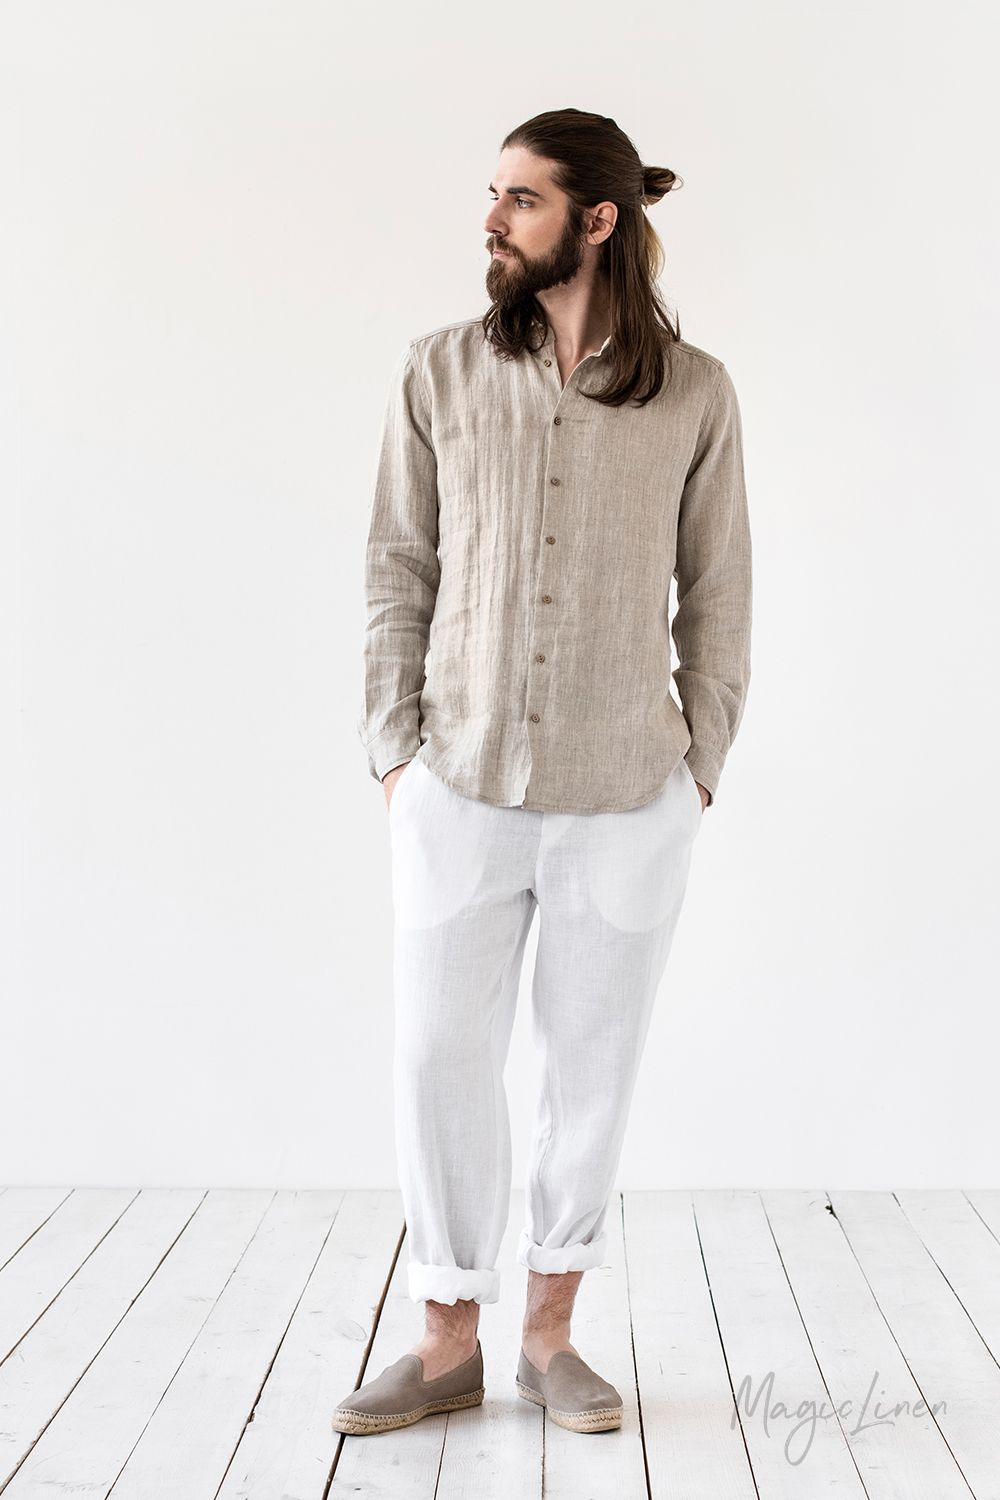 Discover our classy linen staples for men who calue style